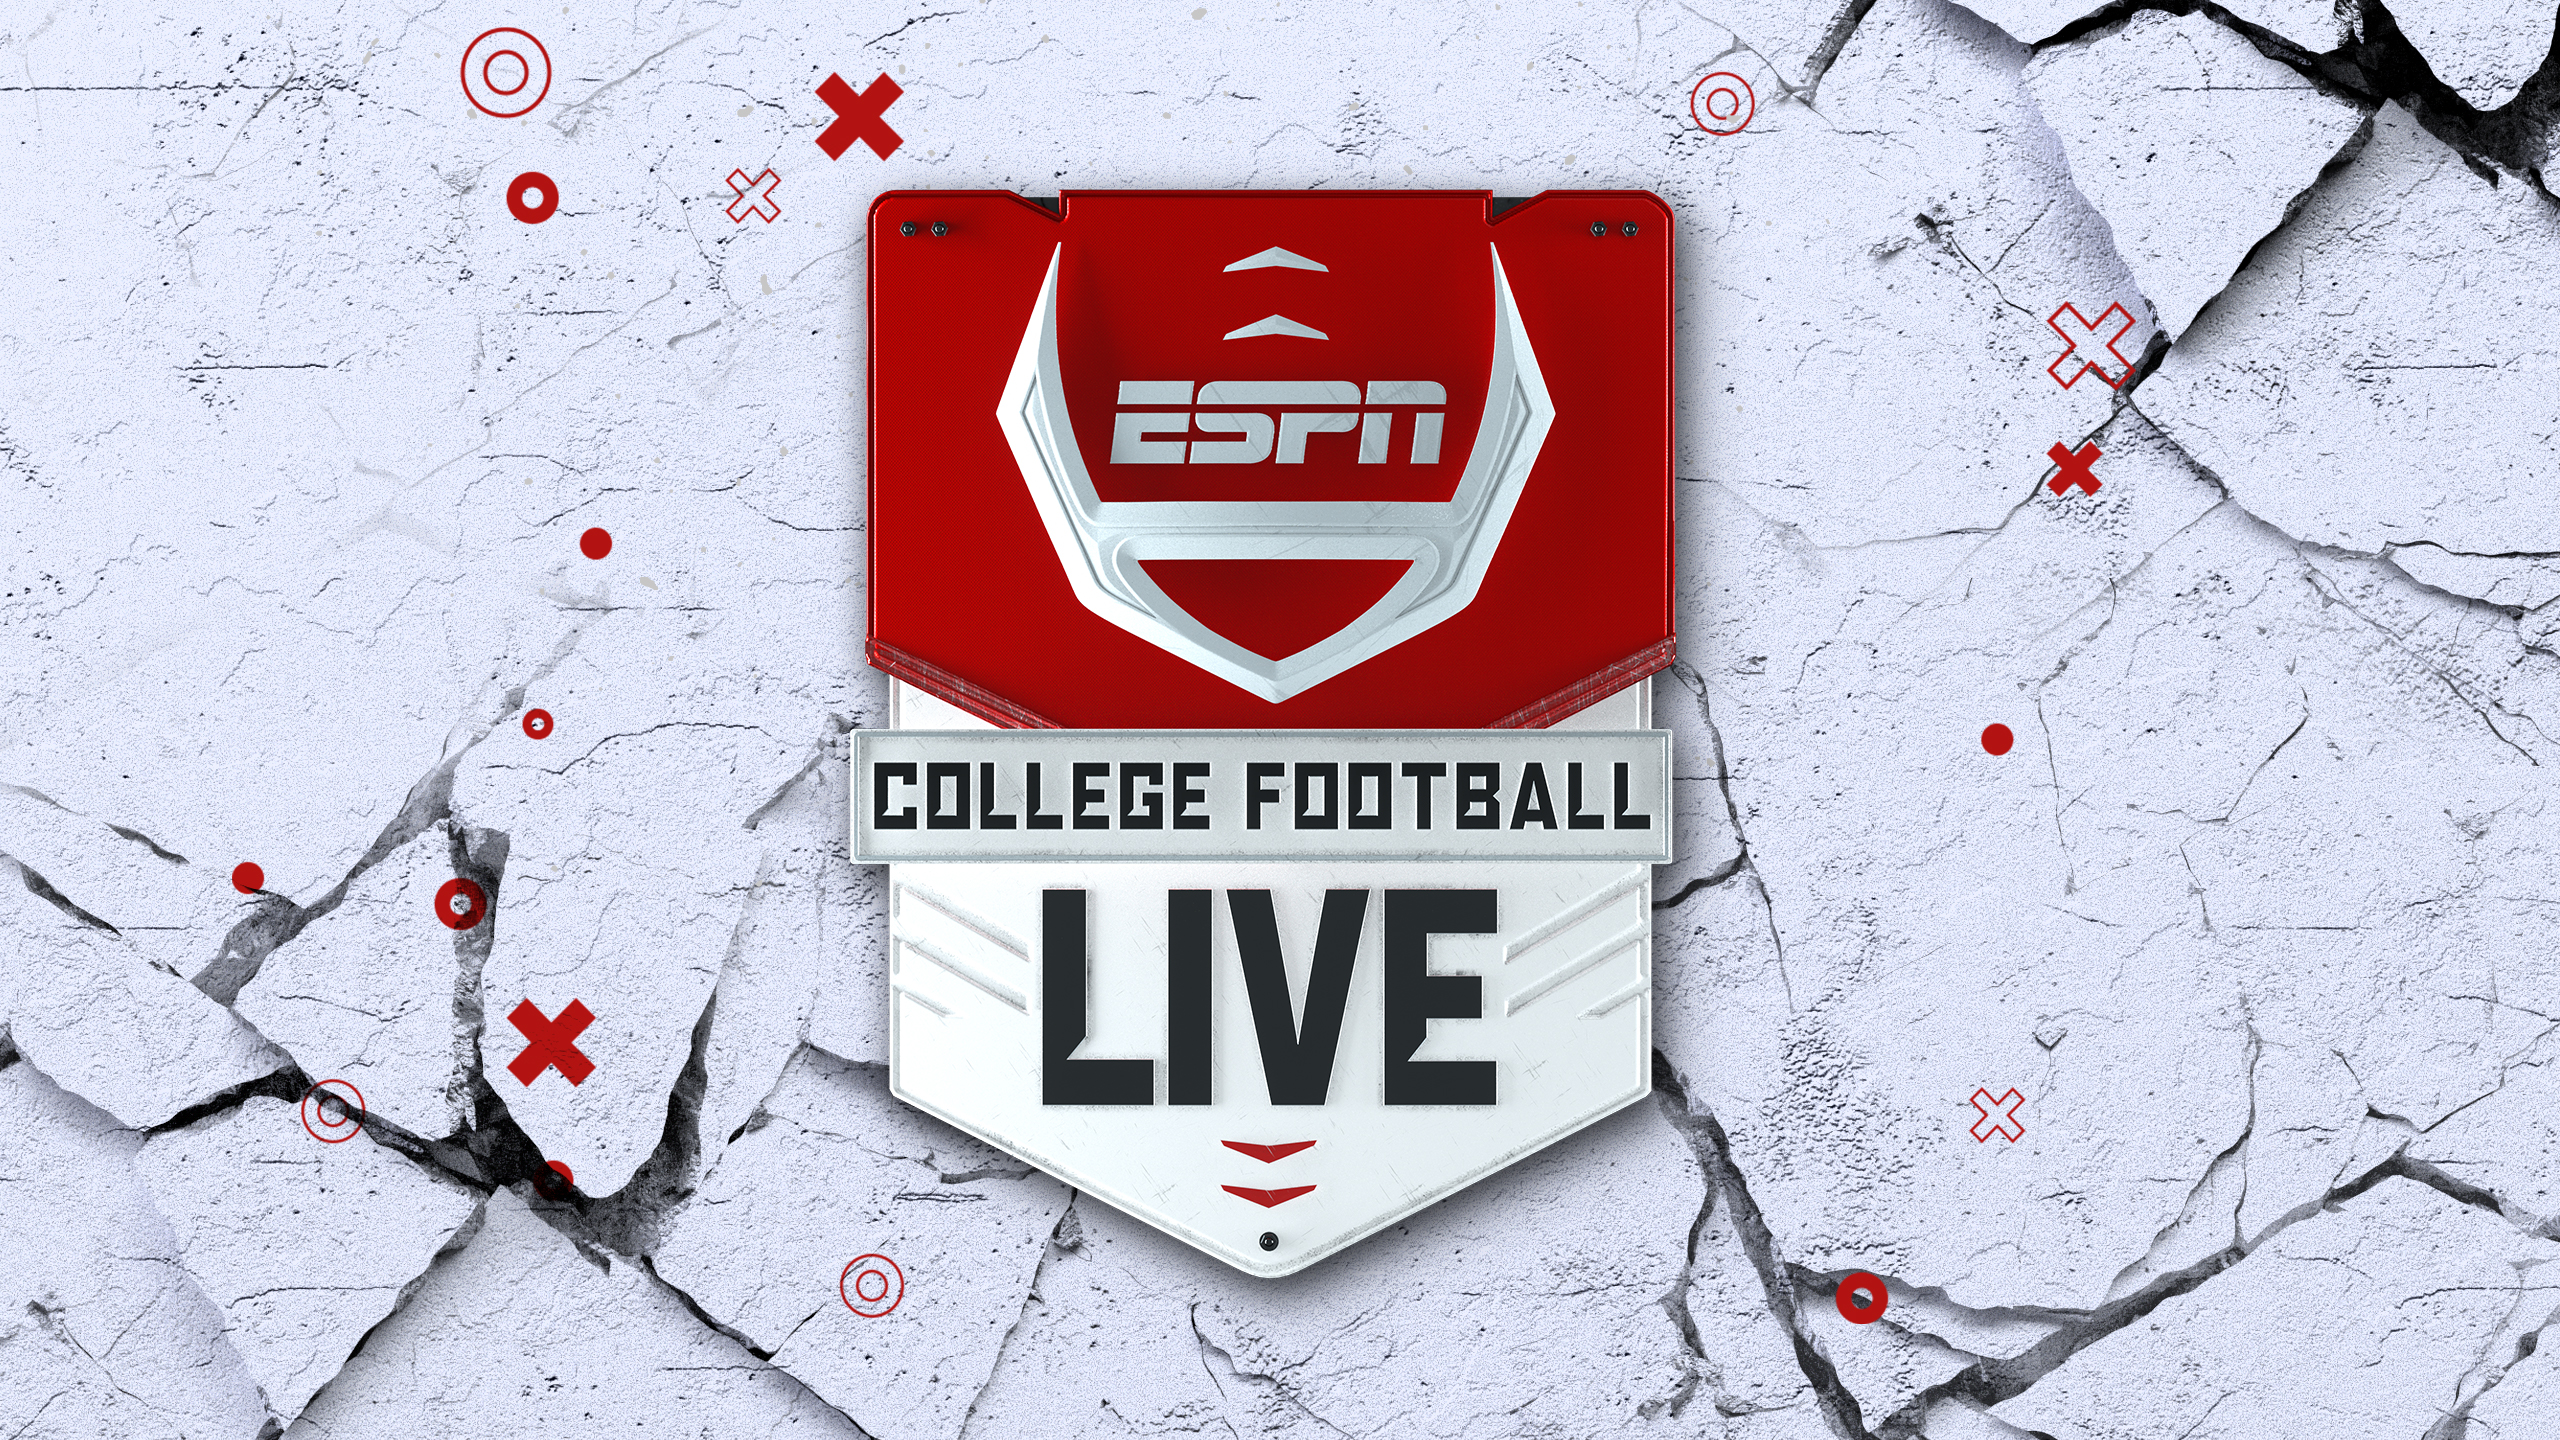 Tue, 12/11 - College Football Live